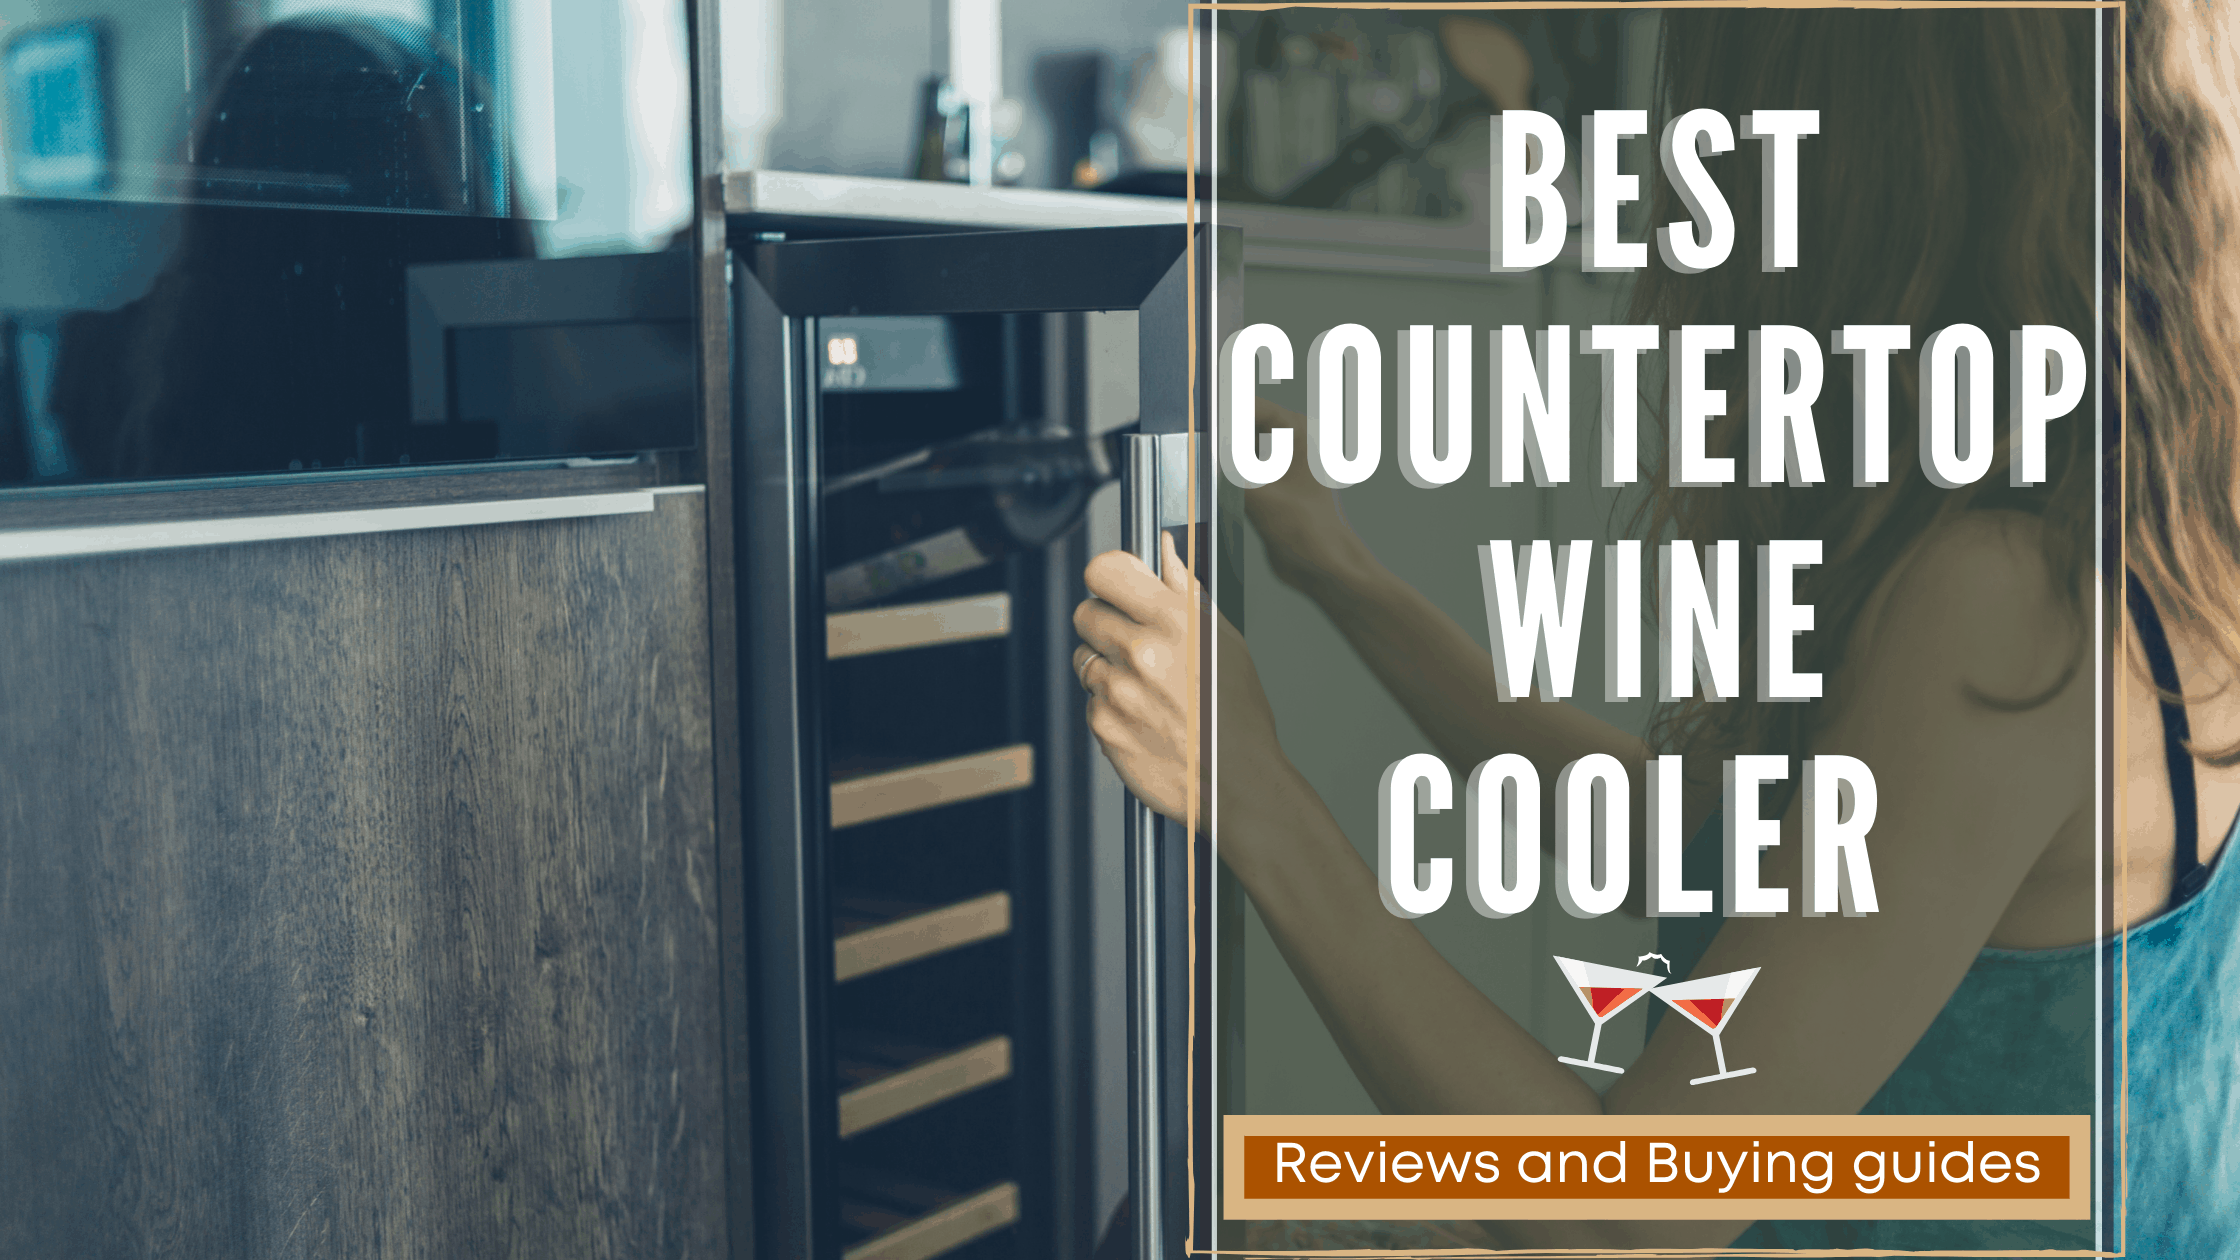 Best Countertop Wine Cooler